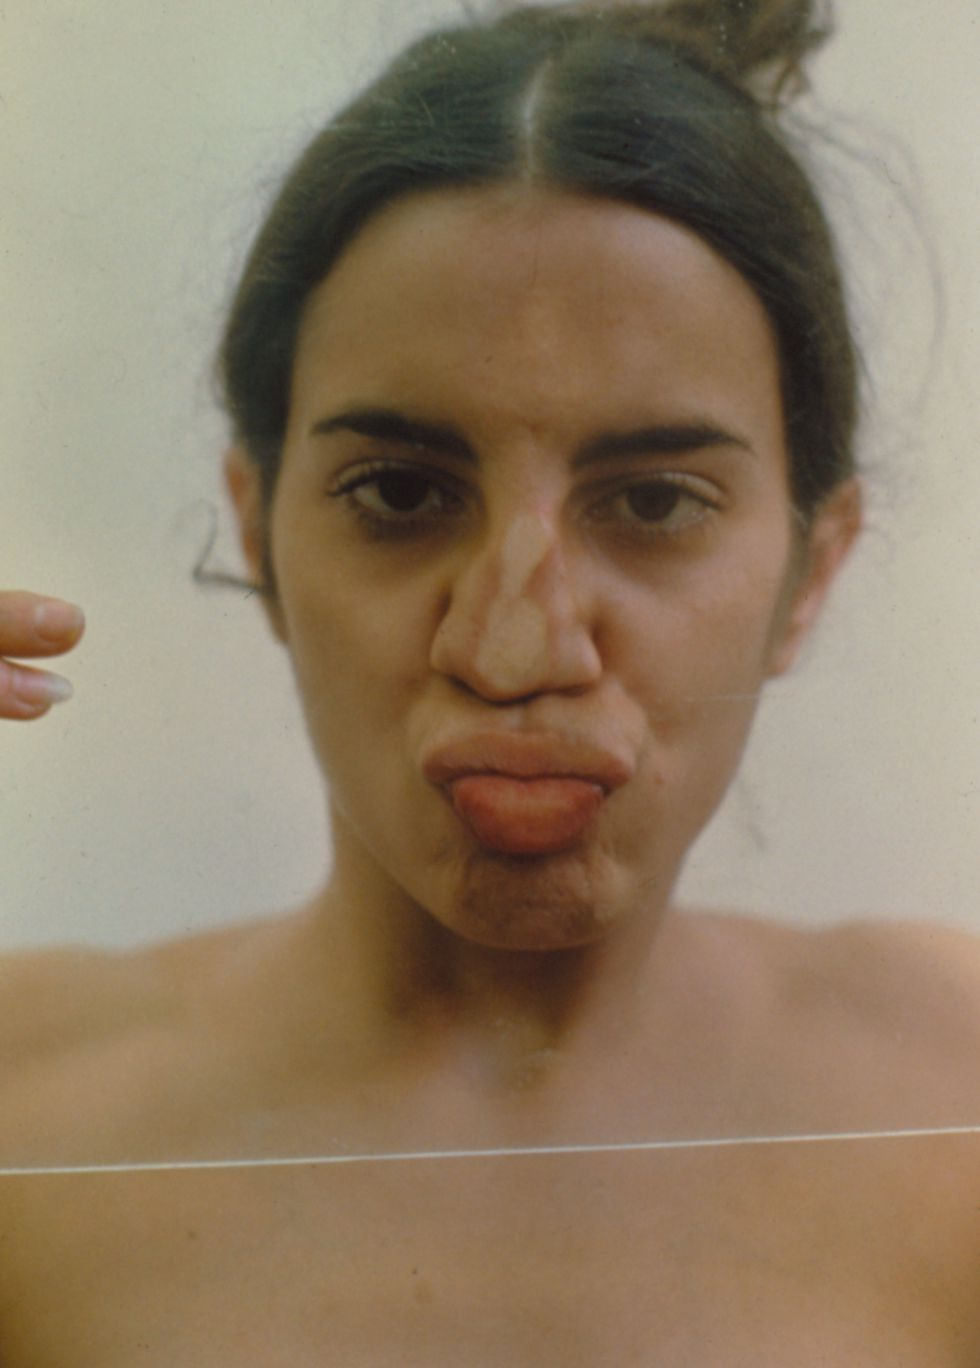 'Untitled (Glass on Body Imprints)', 1972/1997, de Ana Mendieta. © Ana Mendieta / SAMMLUNG VERBUND, Viena